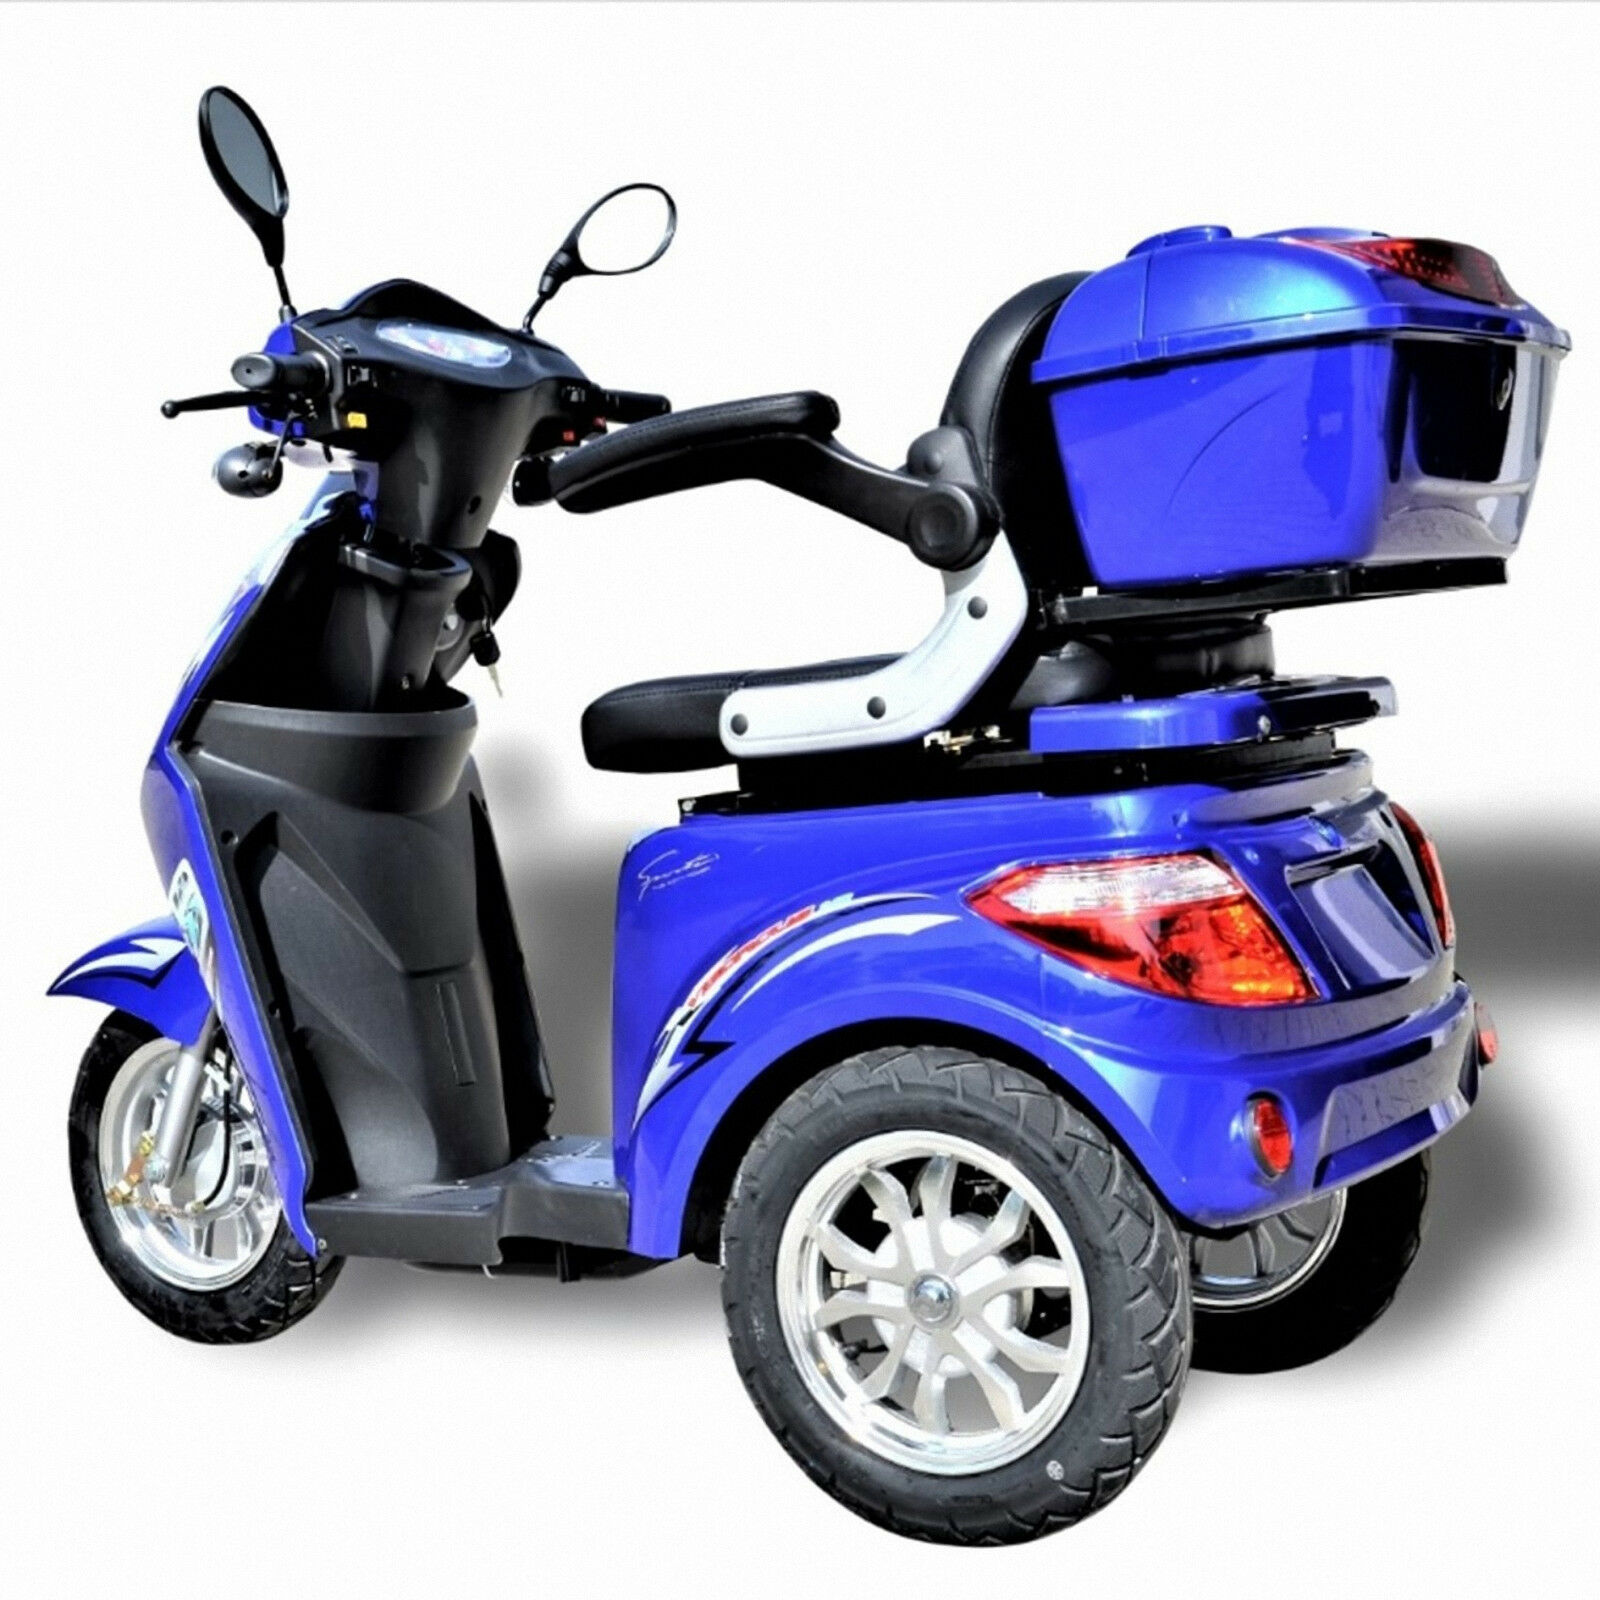 dreirad scooter seniorenmobil eco engel 501 1000 watt elektro mobil blau met eur. Black Bedroom Furniture Sets. Home Design Ideas